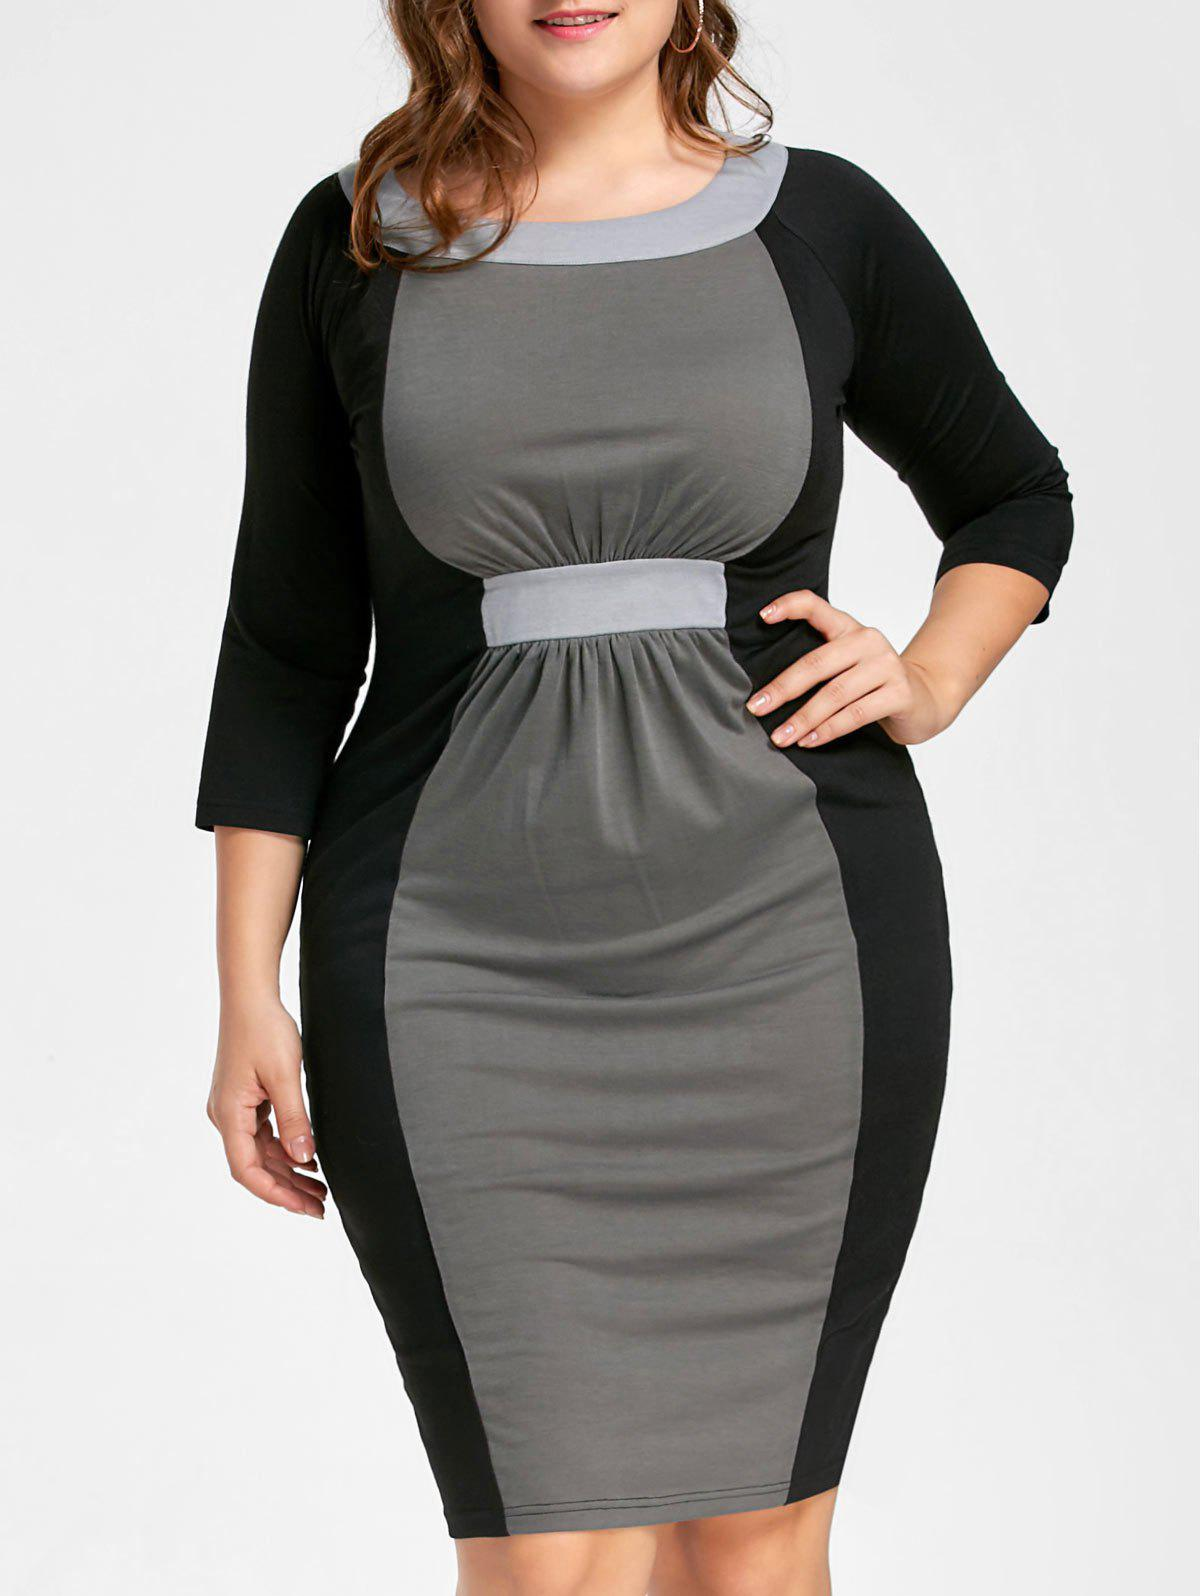 Color Block Plus Size Bodycon DressWOMEN<br><br>Size: 3XL; Color: BLACK AND GREY; Style: Brief; Material: Polyester,Spandex; Silhouette: Bodycon; Dresses Length: Knee-Length; Neckline: Round Collar; Sleeve Length: 3/4 Length Sleeves; Pattern Type: Patchwork; With Belt: No; Season: Fall,Spring; Weight: 0.3200kg; Package Contents: 1 x Dress;